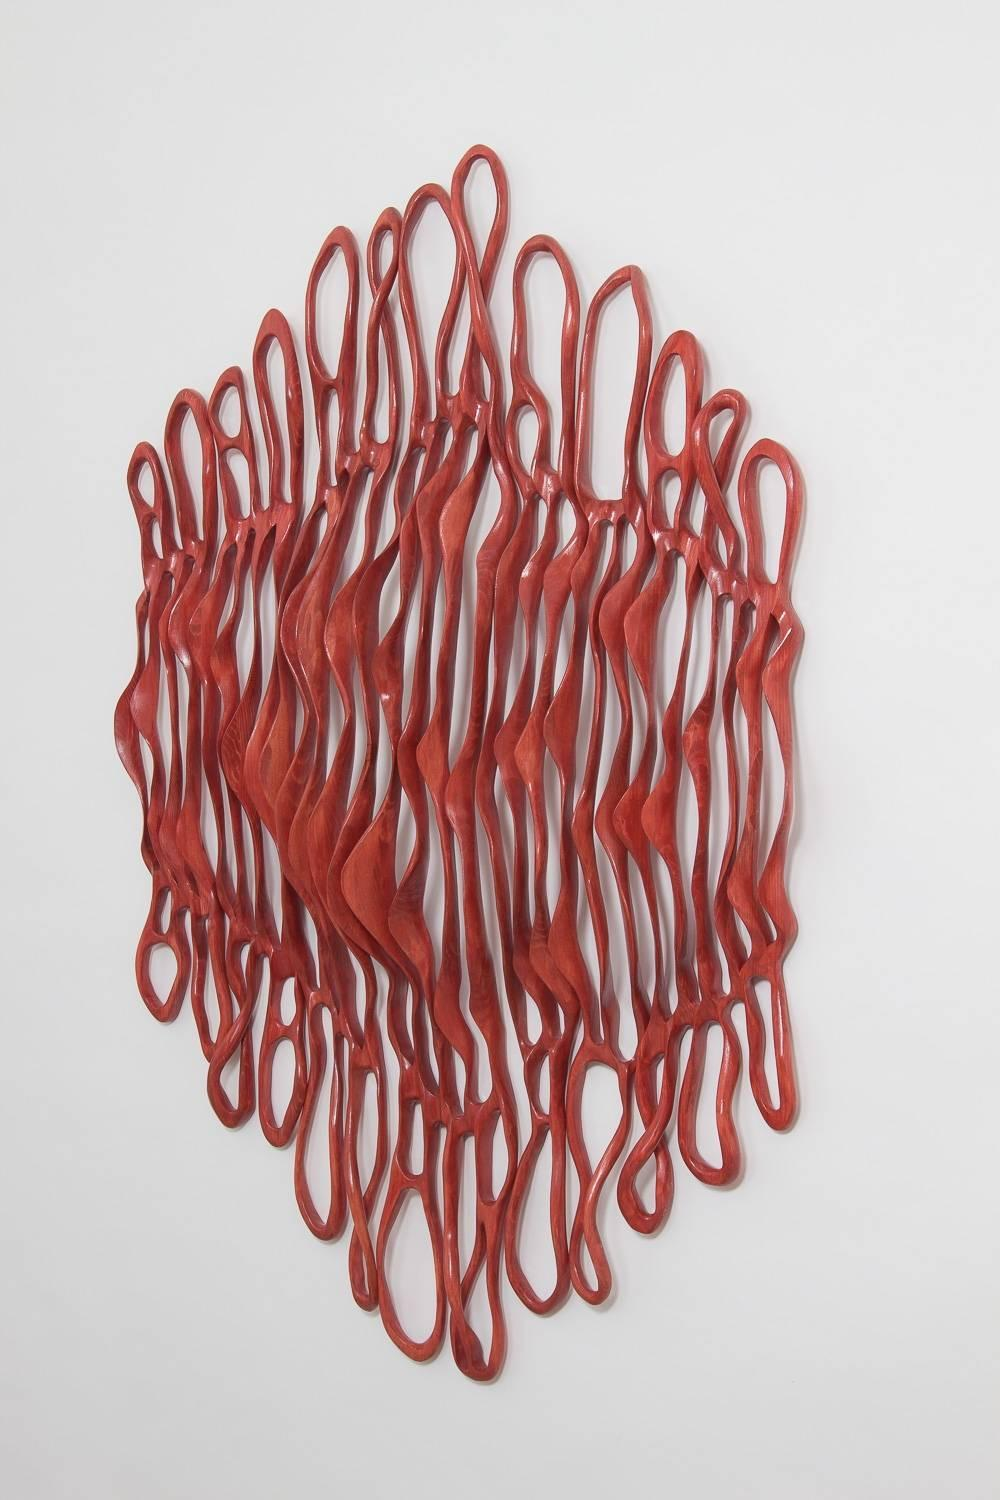 Caprice Pierucci Red Dawn Cascade For Sale At 1stdibs